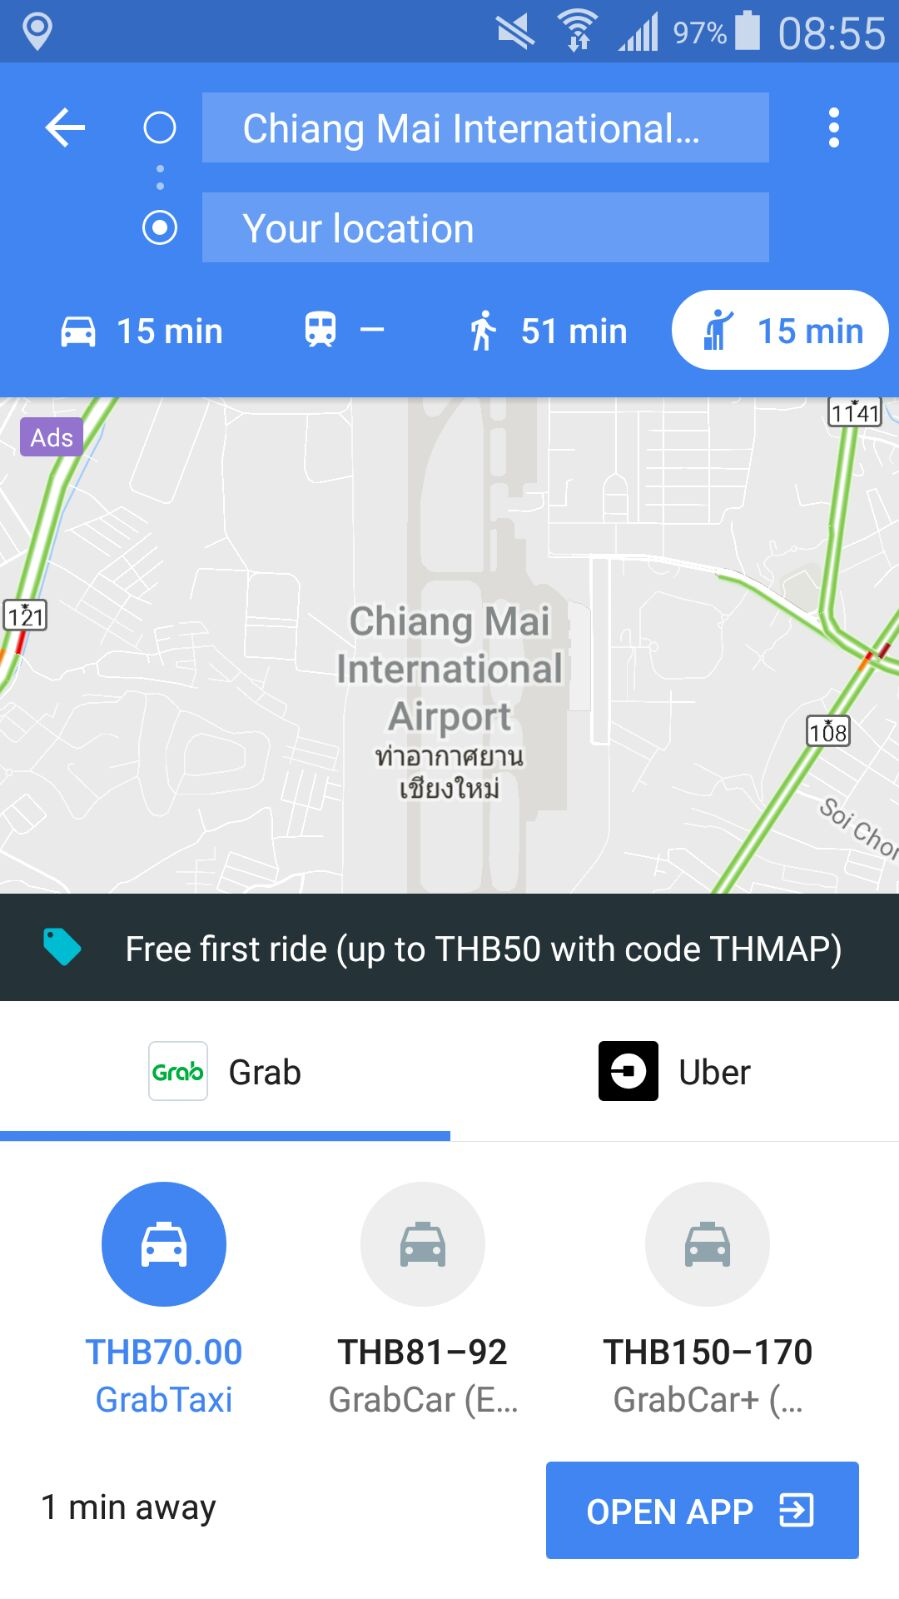 Google Maps has a Taxi/Ride share view where you can see an estimated price for the ride. Look for the icon of the person with their arm up, like they're hailing a taxi.